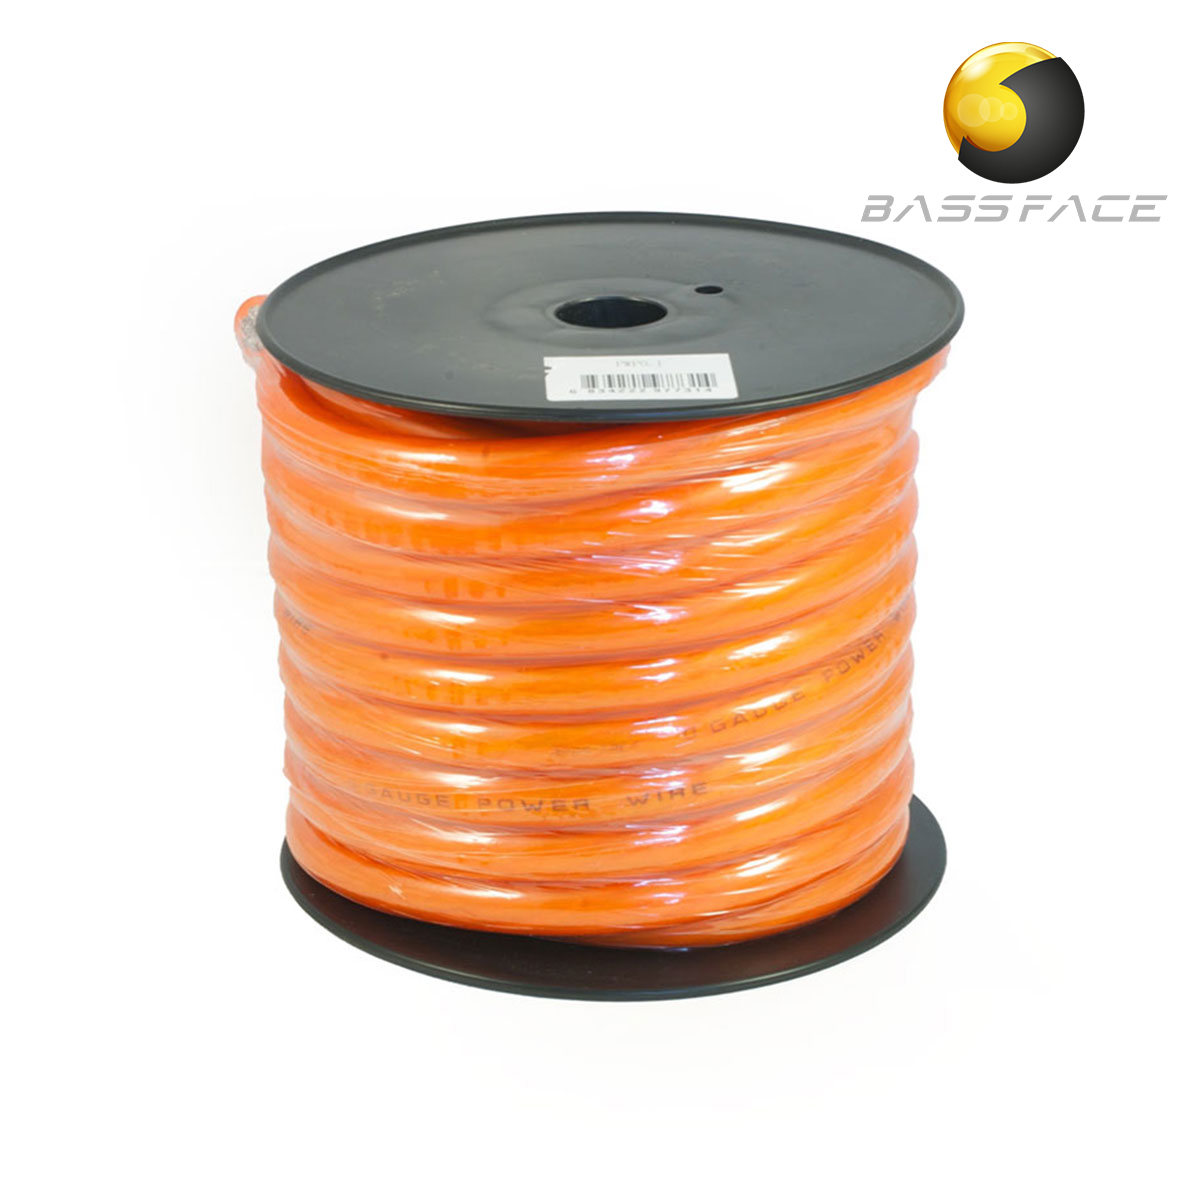 Bassface Car Audio The Specialists Stereo Kit 800w Sub 500w 2 Channel Amplifier Capacitor Wiring Pwp01 15m Roll Cca 0awg 53mm Orange Power Cable 4704 Strand